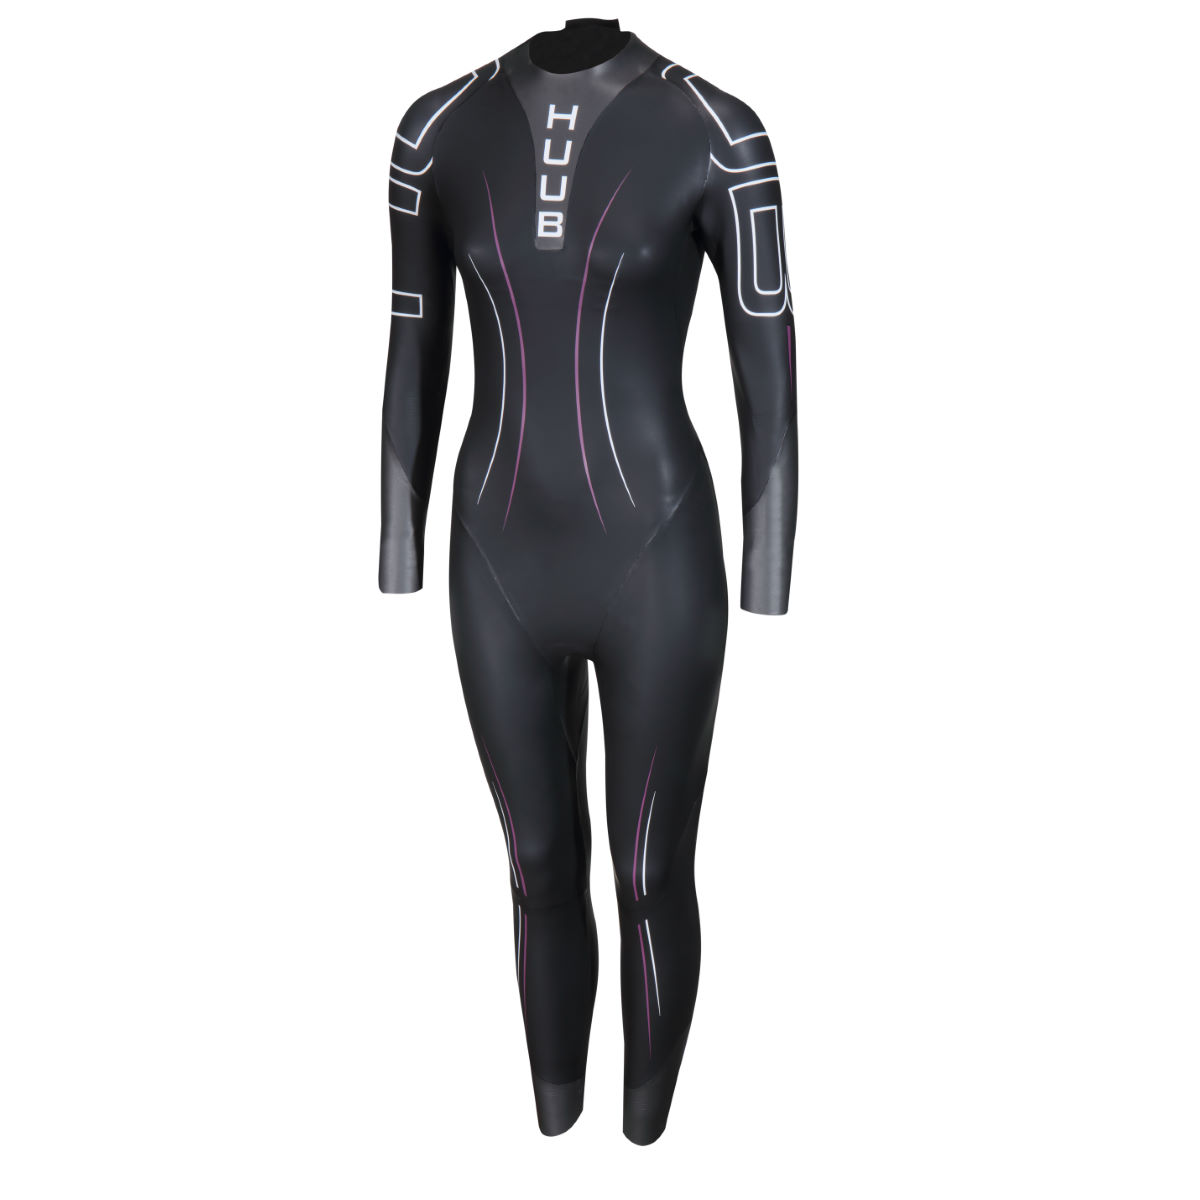 HUUB Aira Wiggle Exclusive Women's Wetsuit